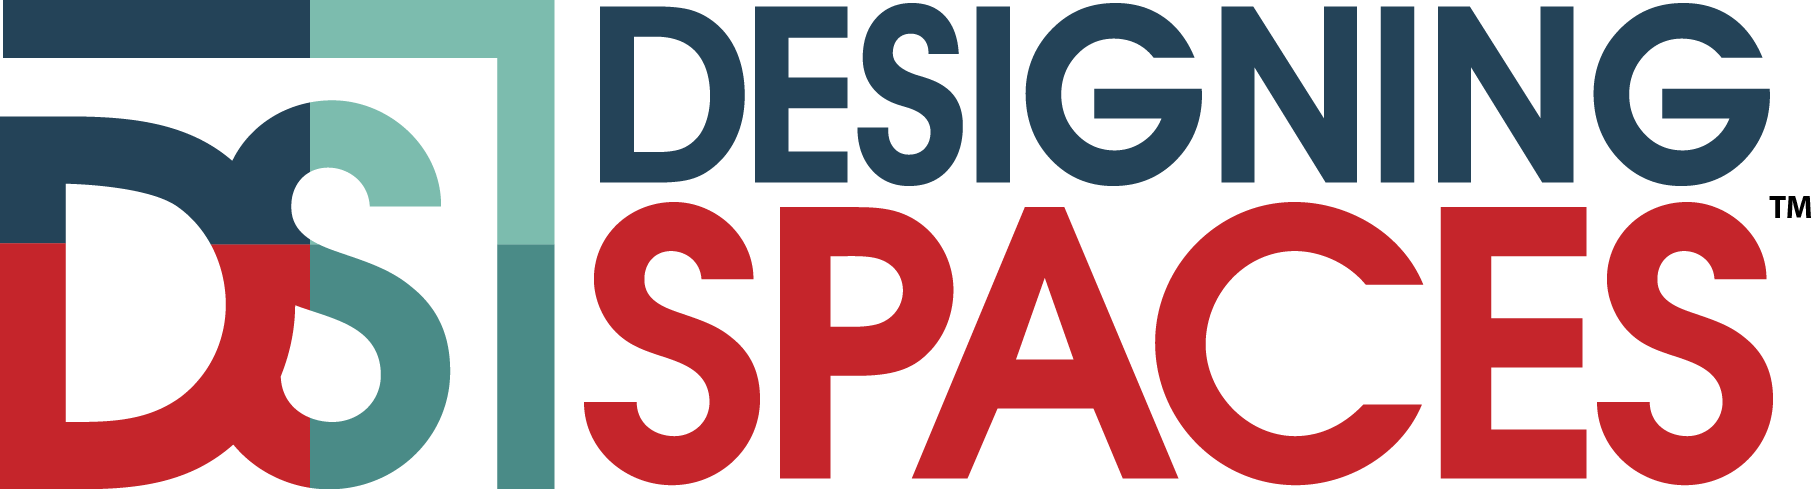 Designing Spaces_logo new